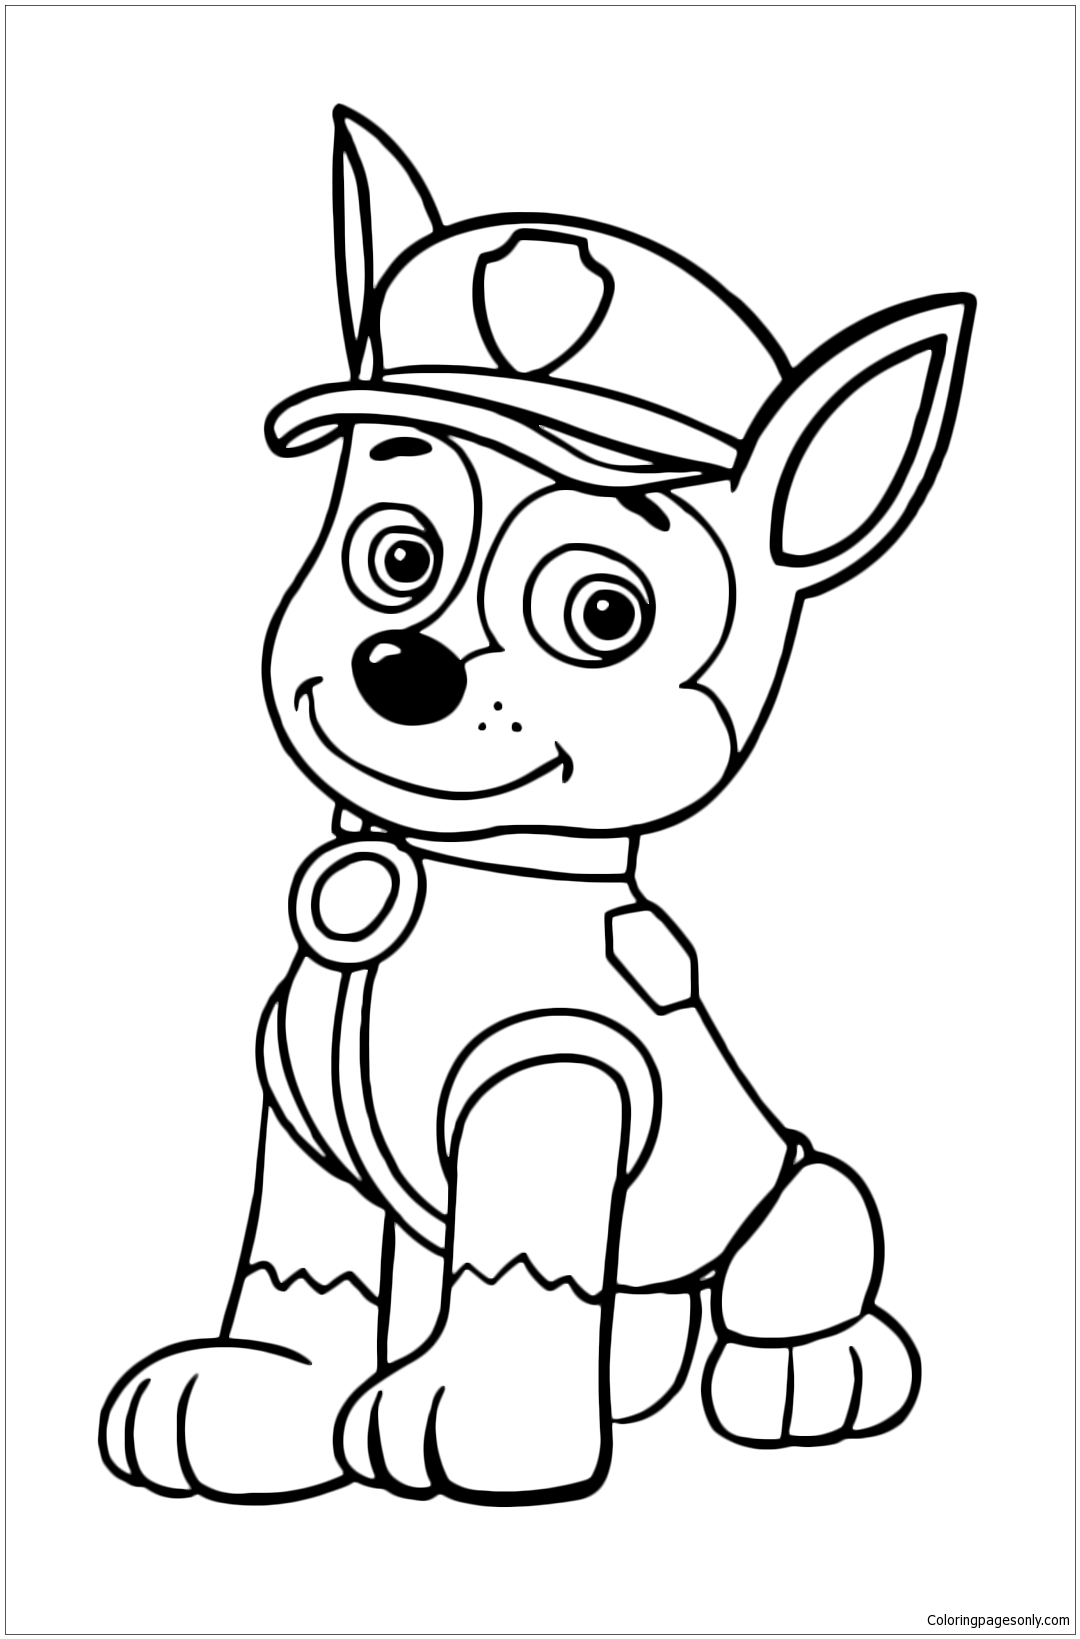 Chase The Police Dog Is Resting Sitting Coloring Page ...